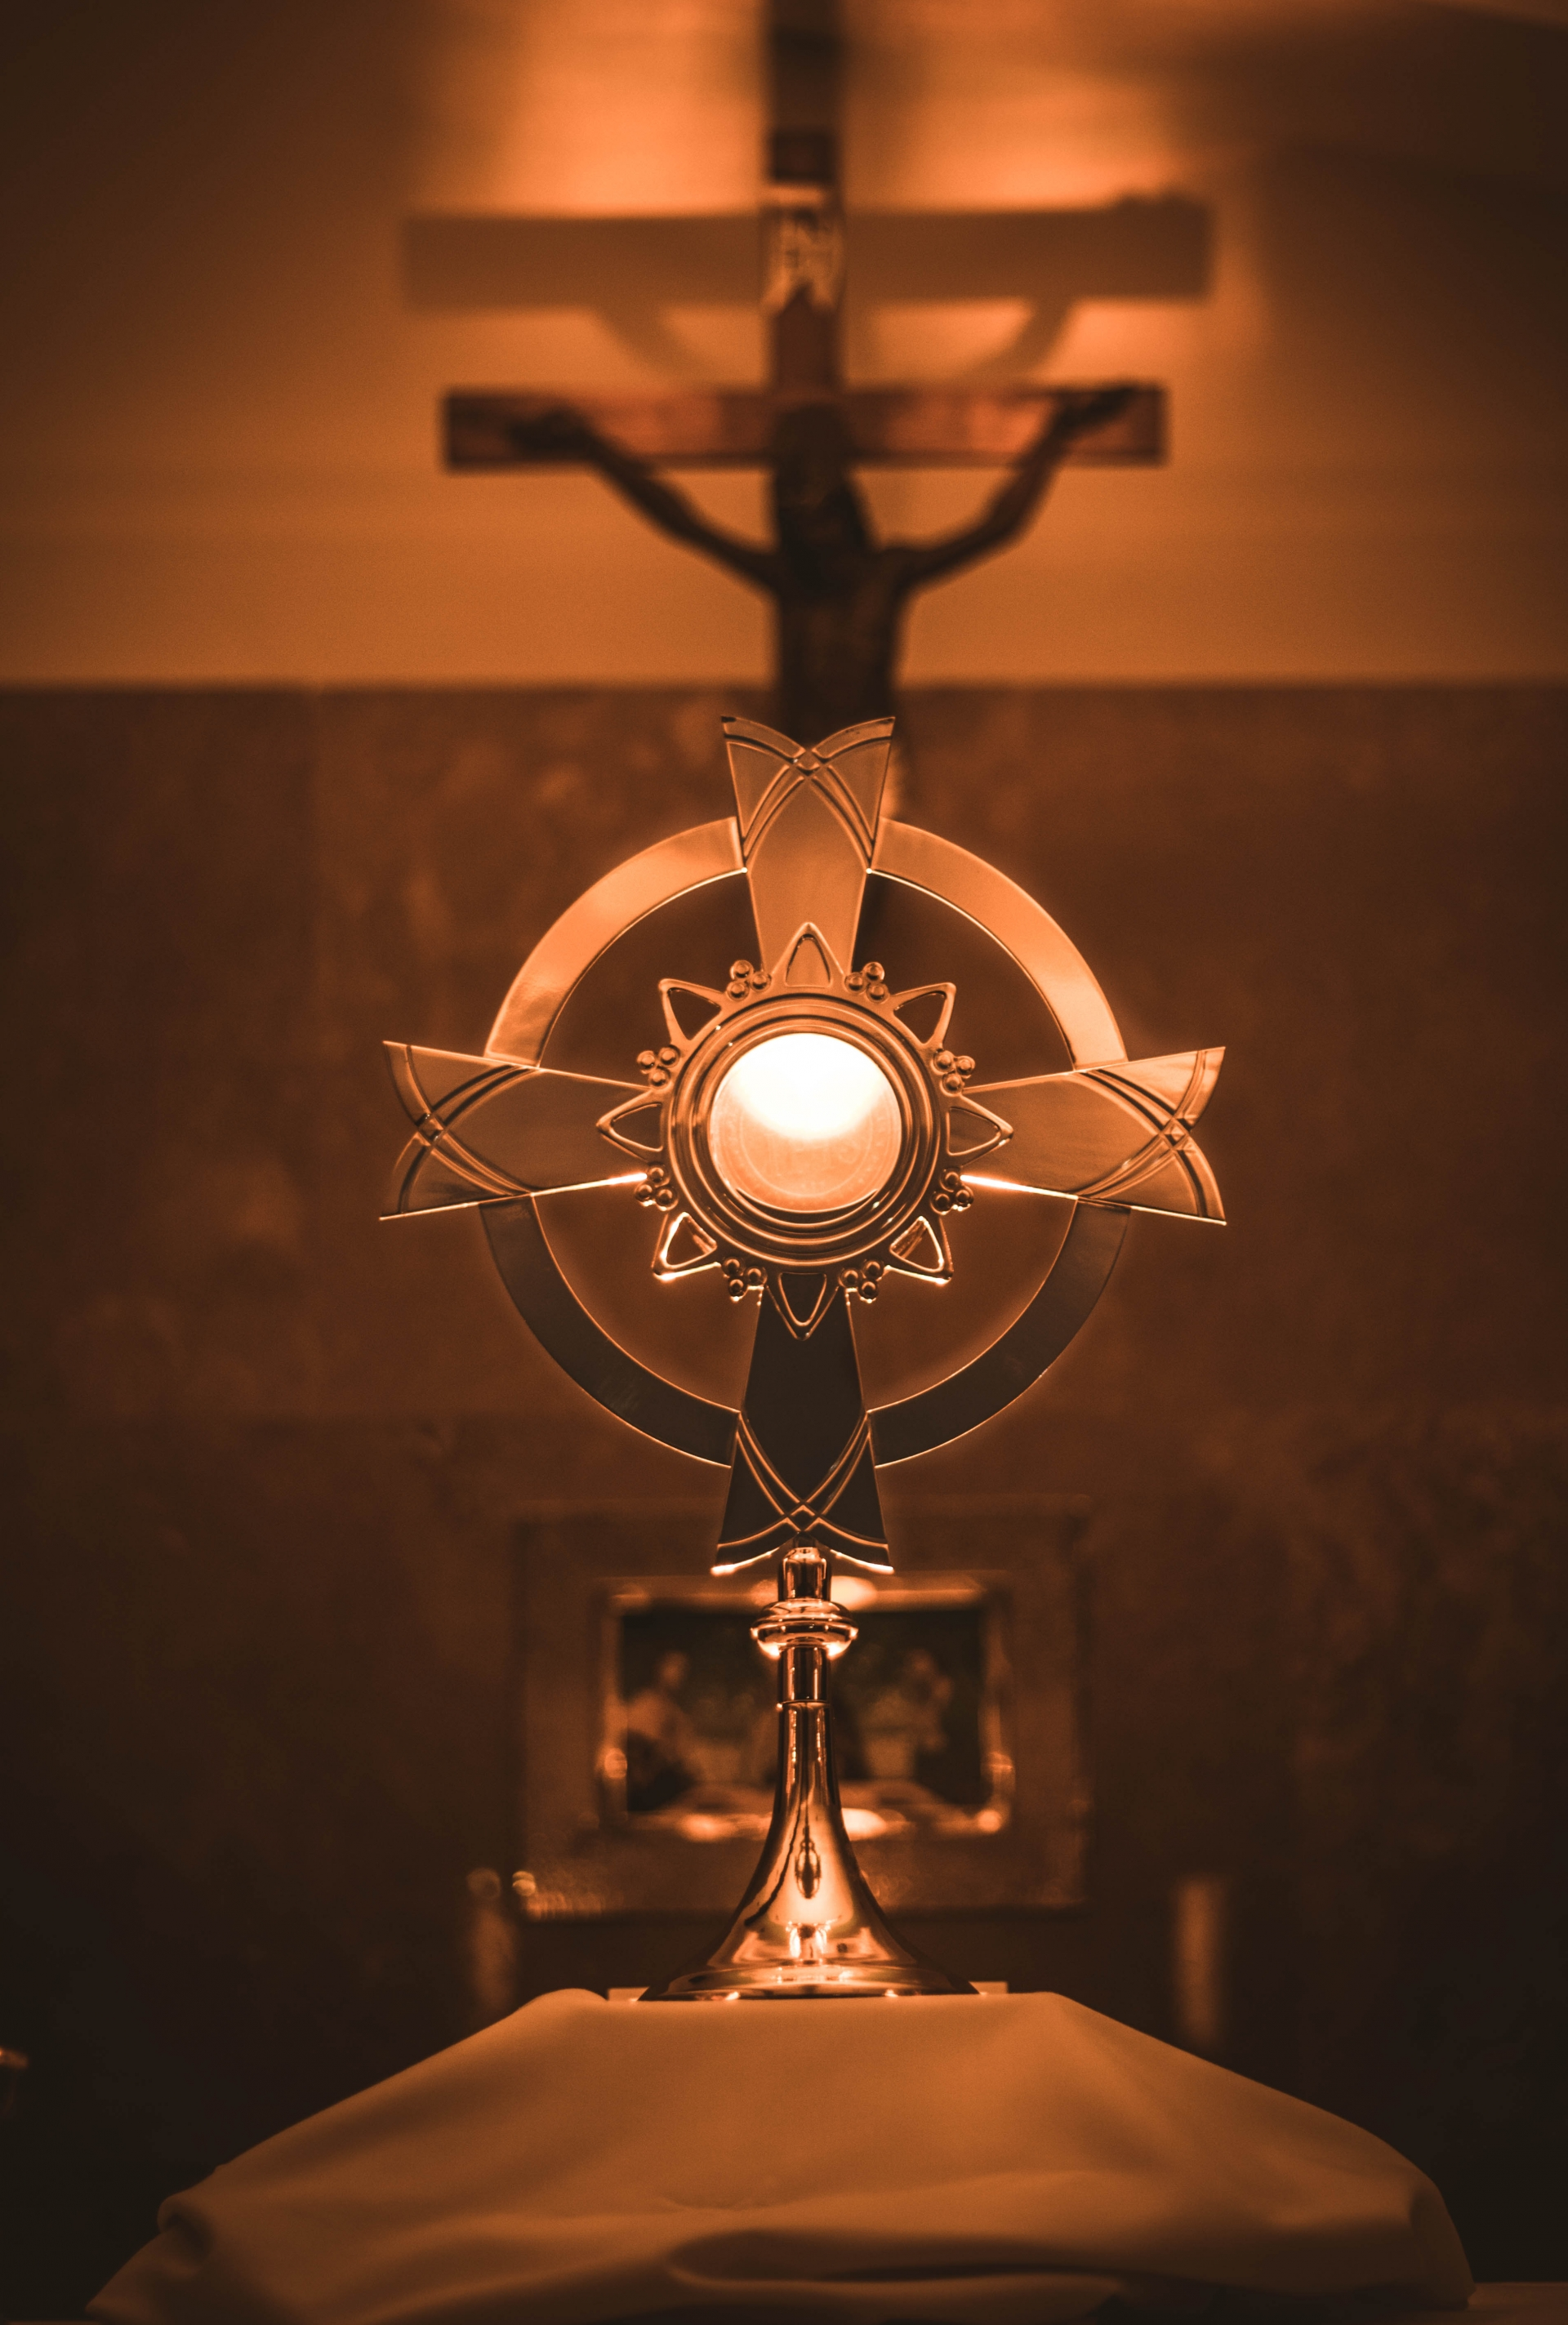 eucharist, silence, christ, chapel, worship